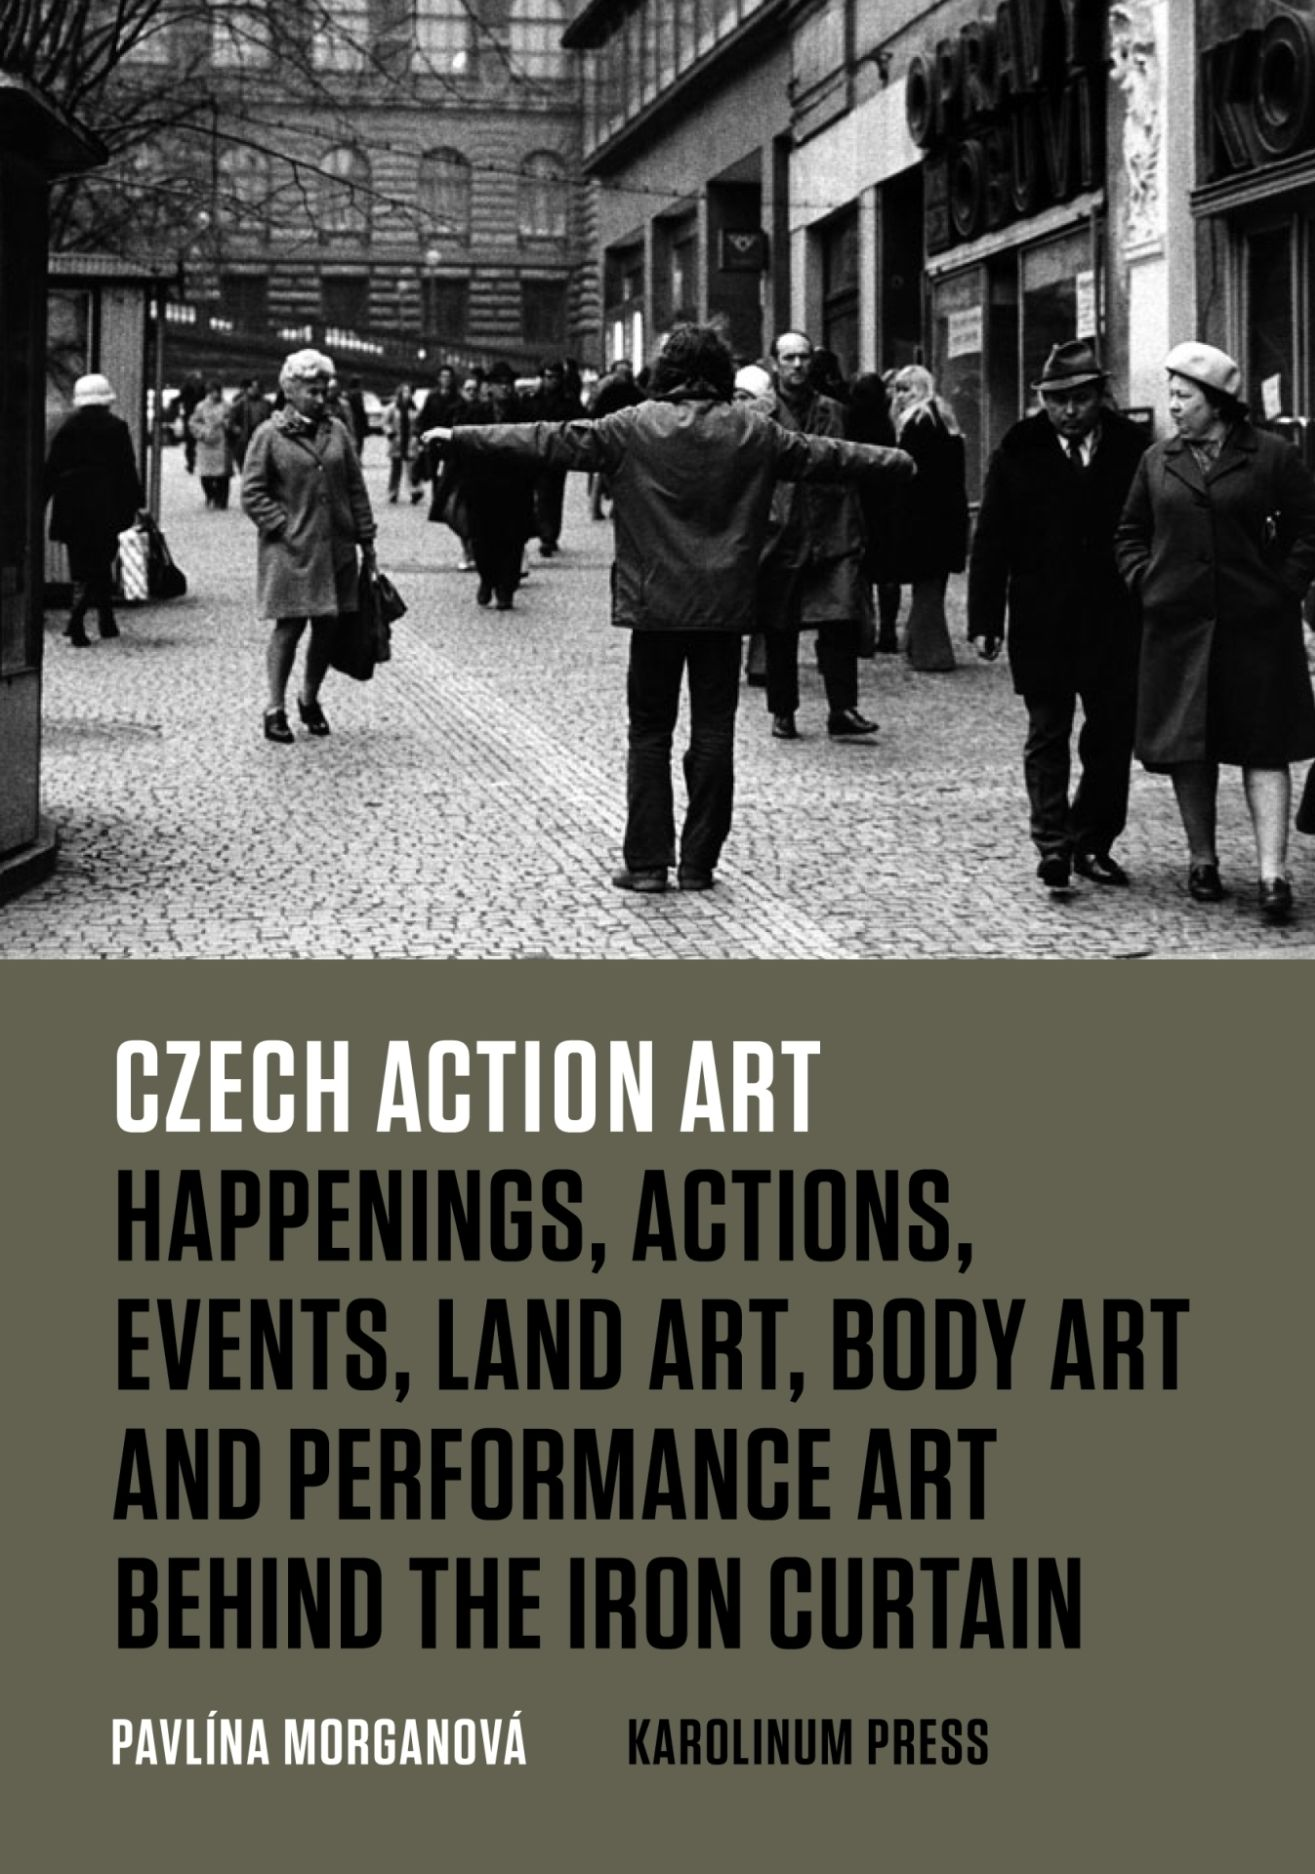 Czech Action Art: Happenings, Actions, Events, Land Art, Body Art and Performance Art Behind the Iron Curtain